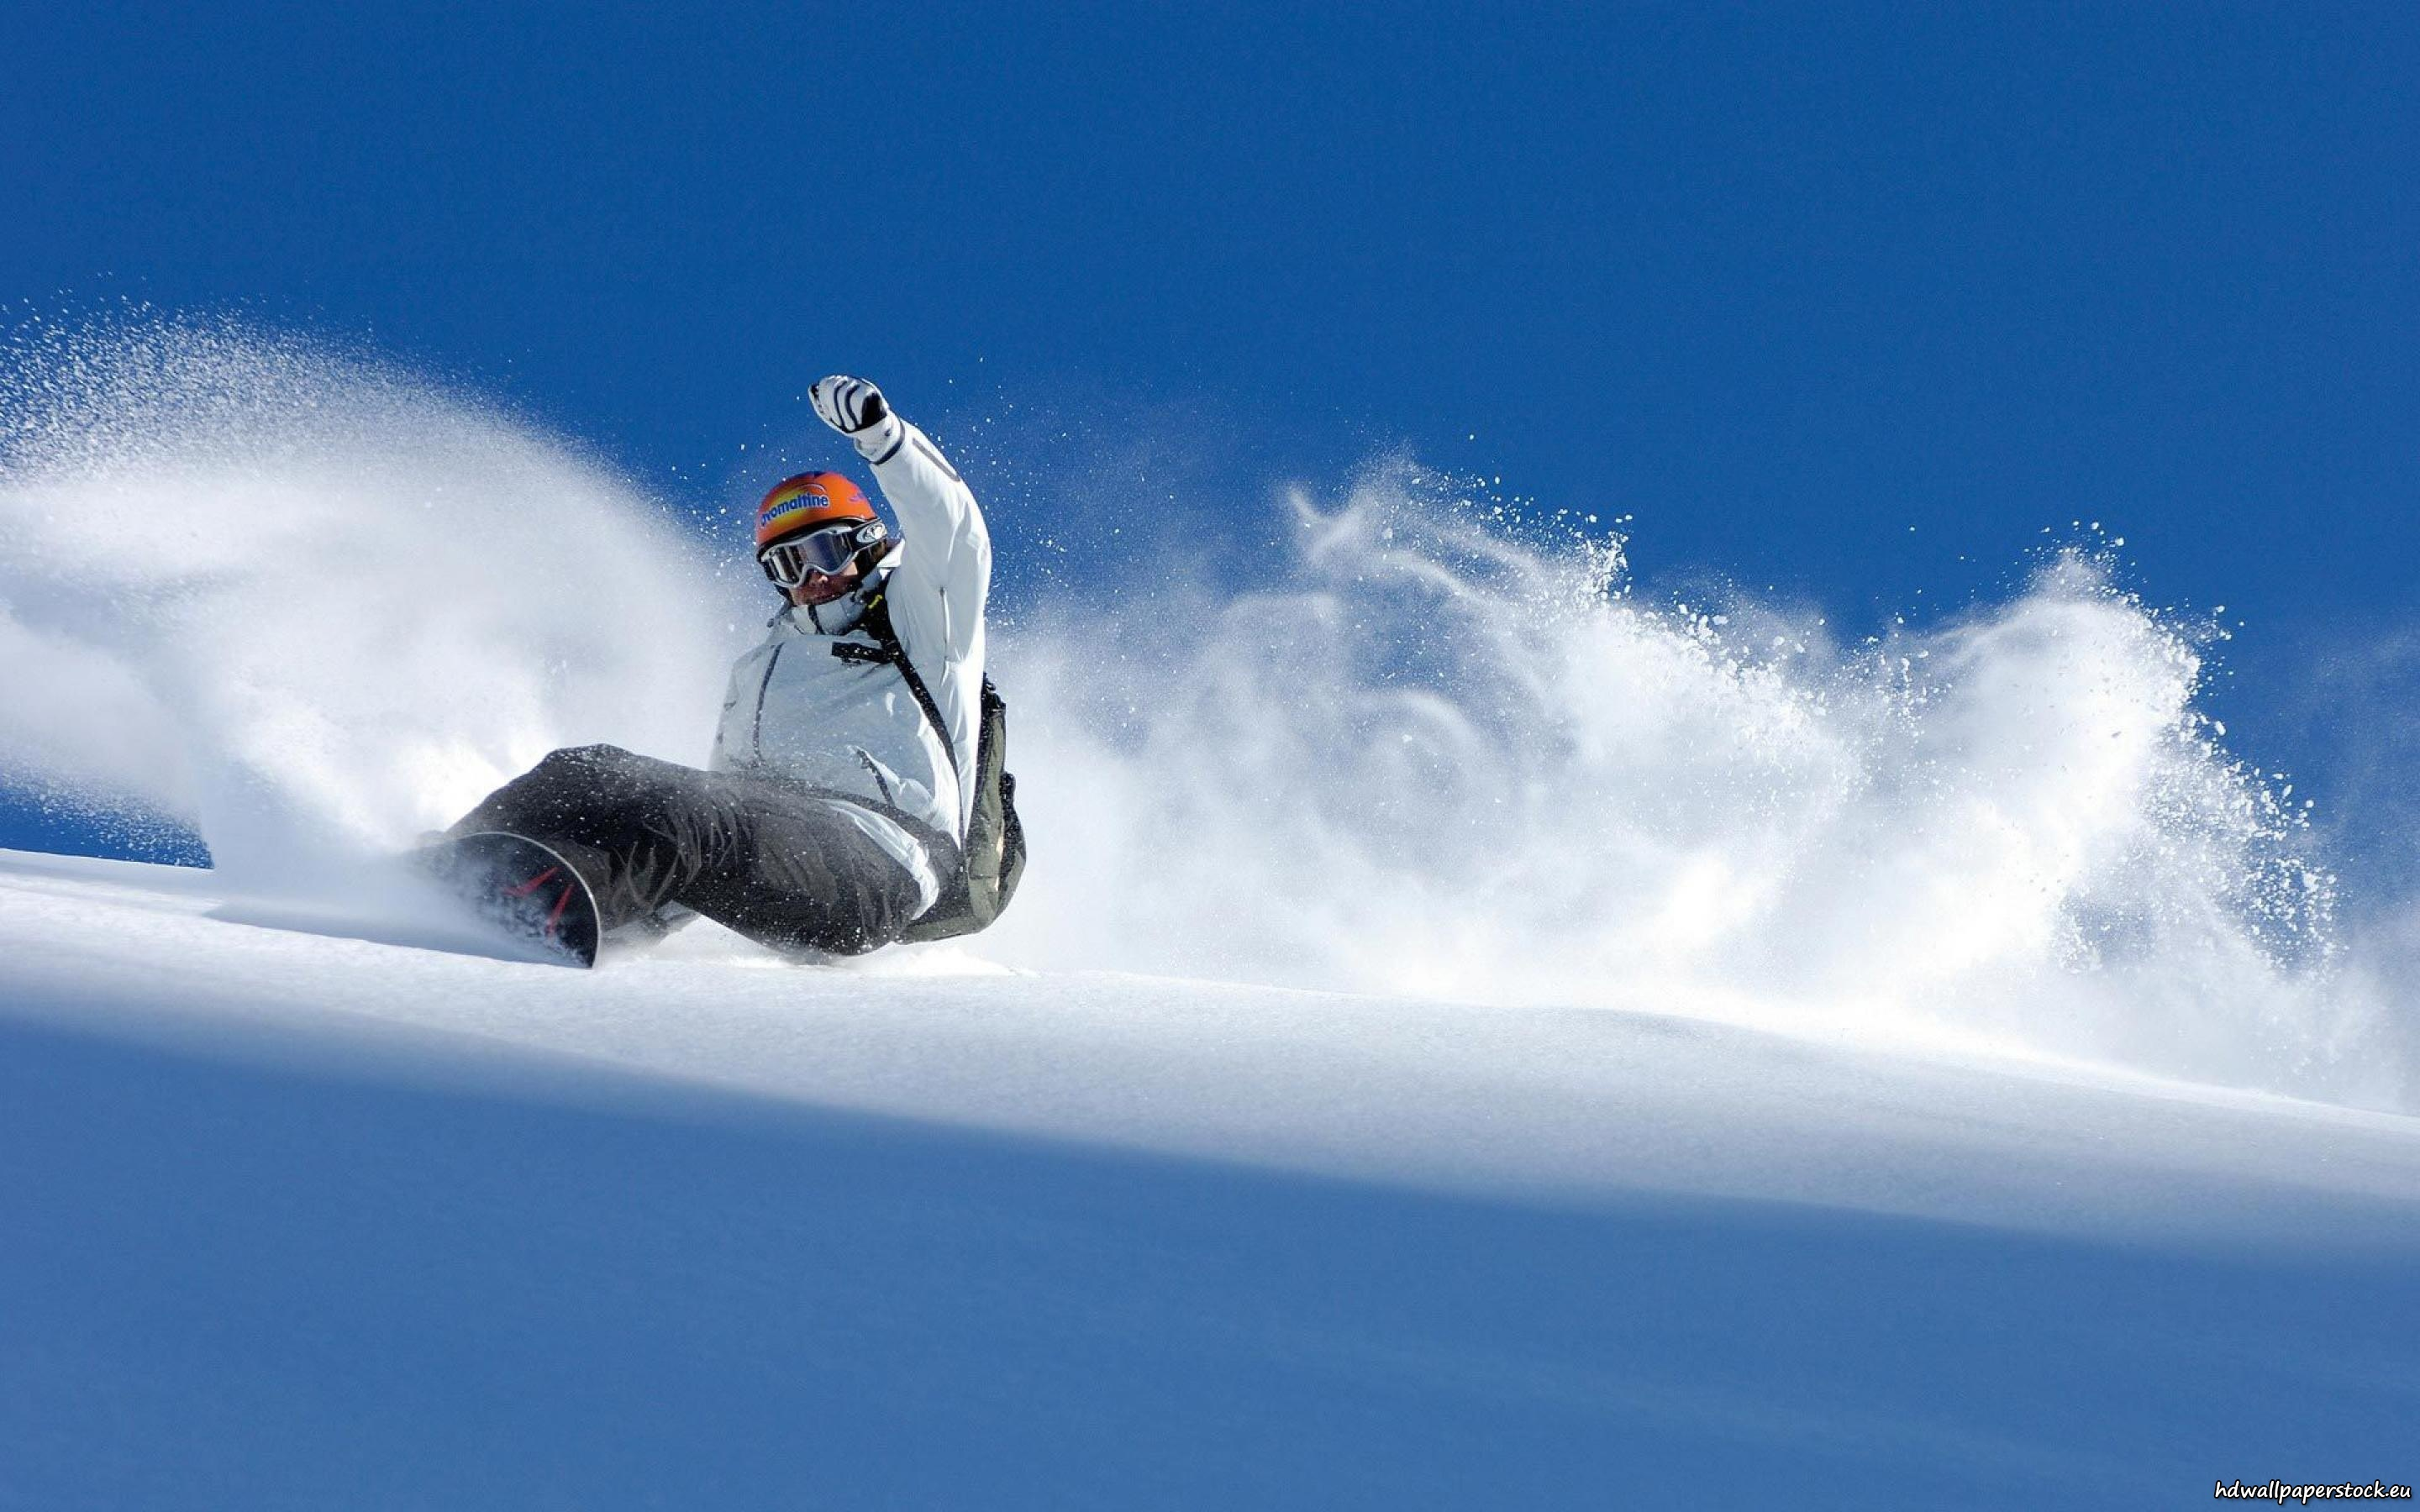 Snowboarding High Quality Wallpapers